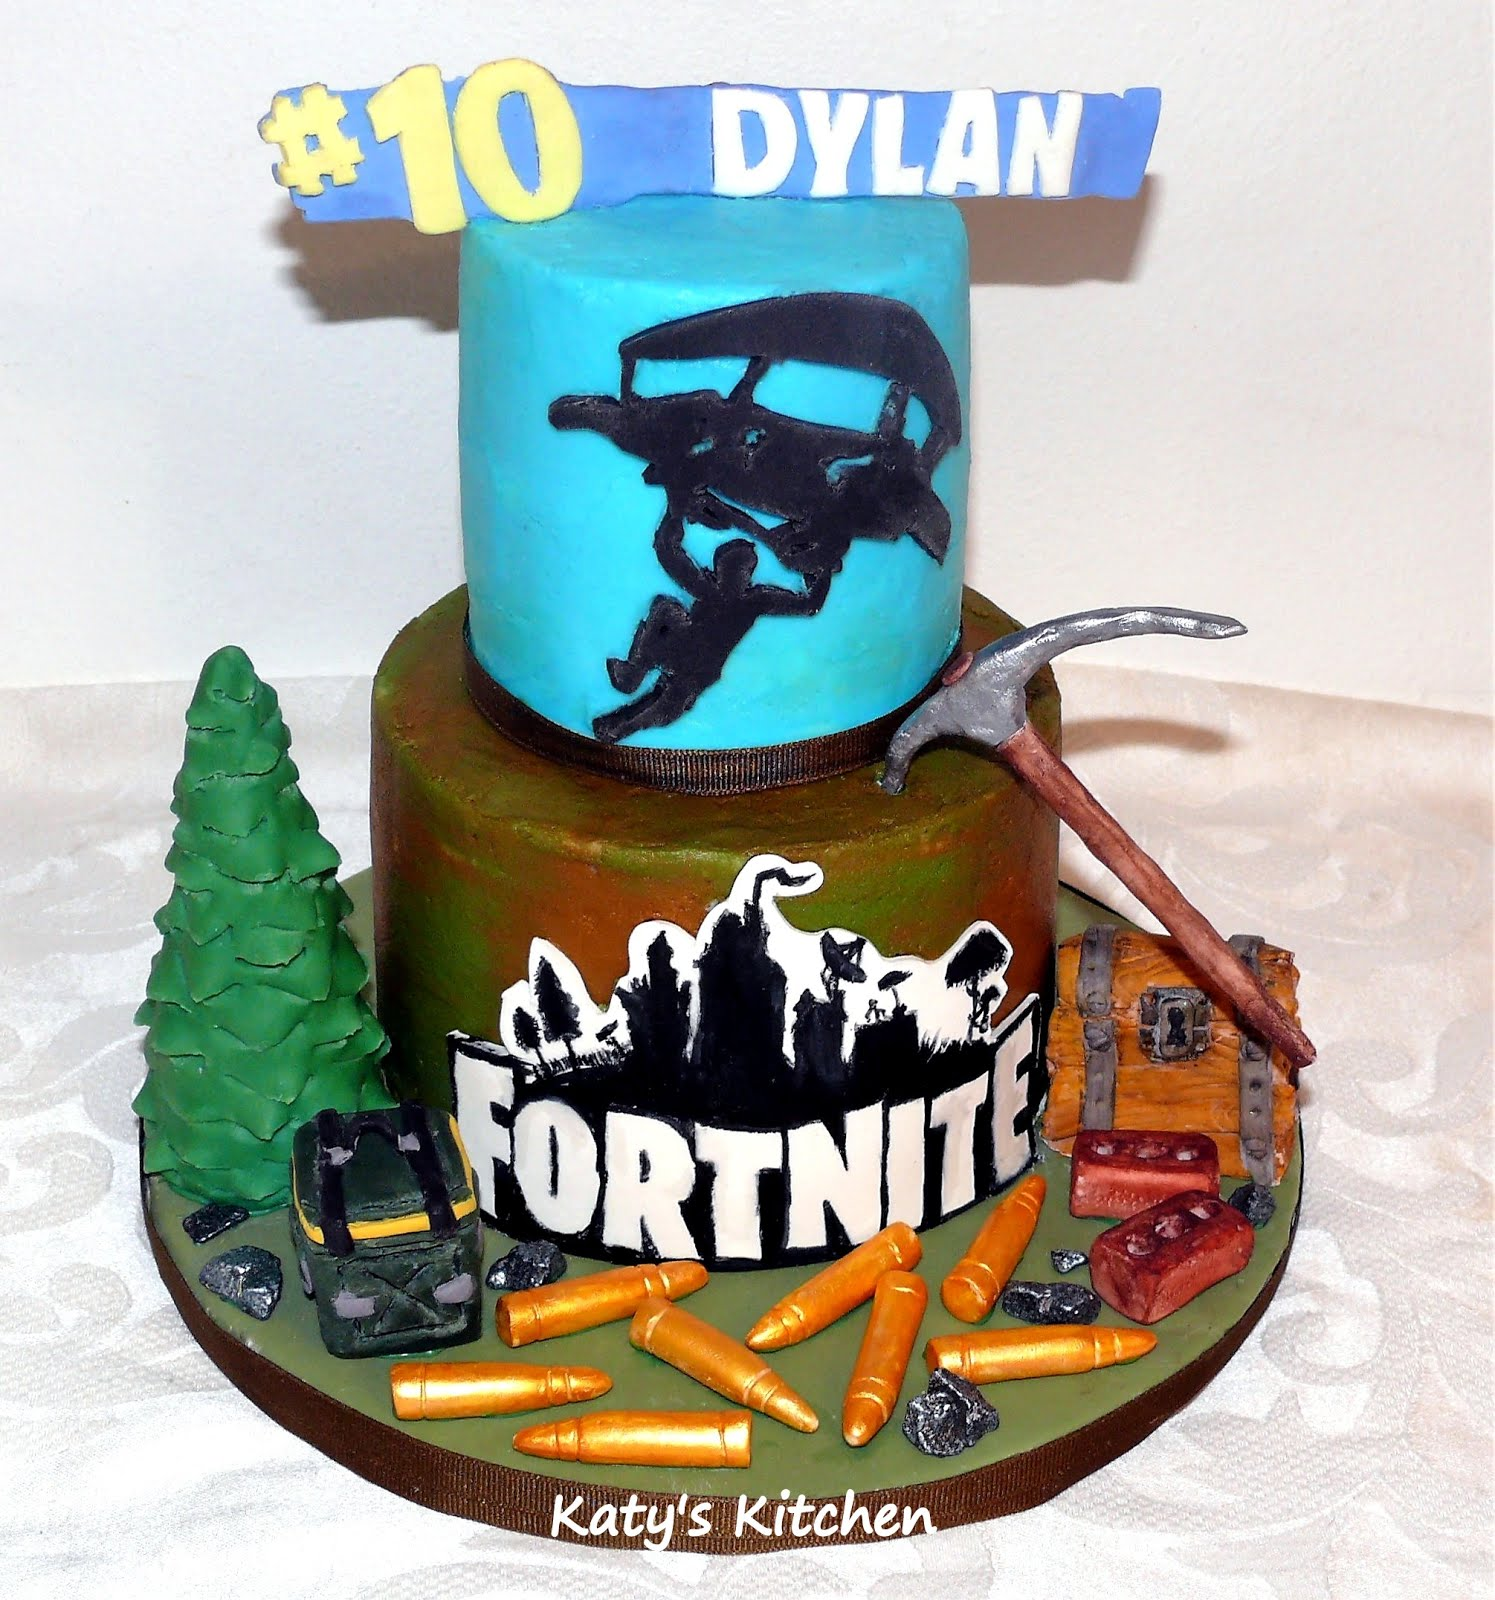 Katy's Kitchen: Fortnite Cake